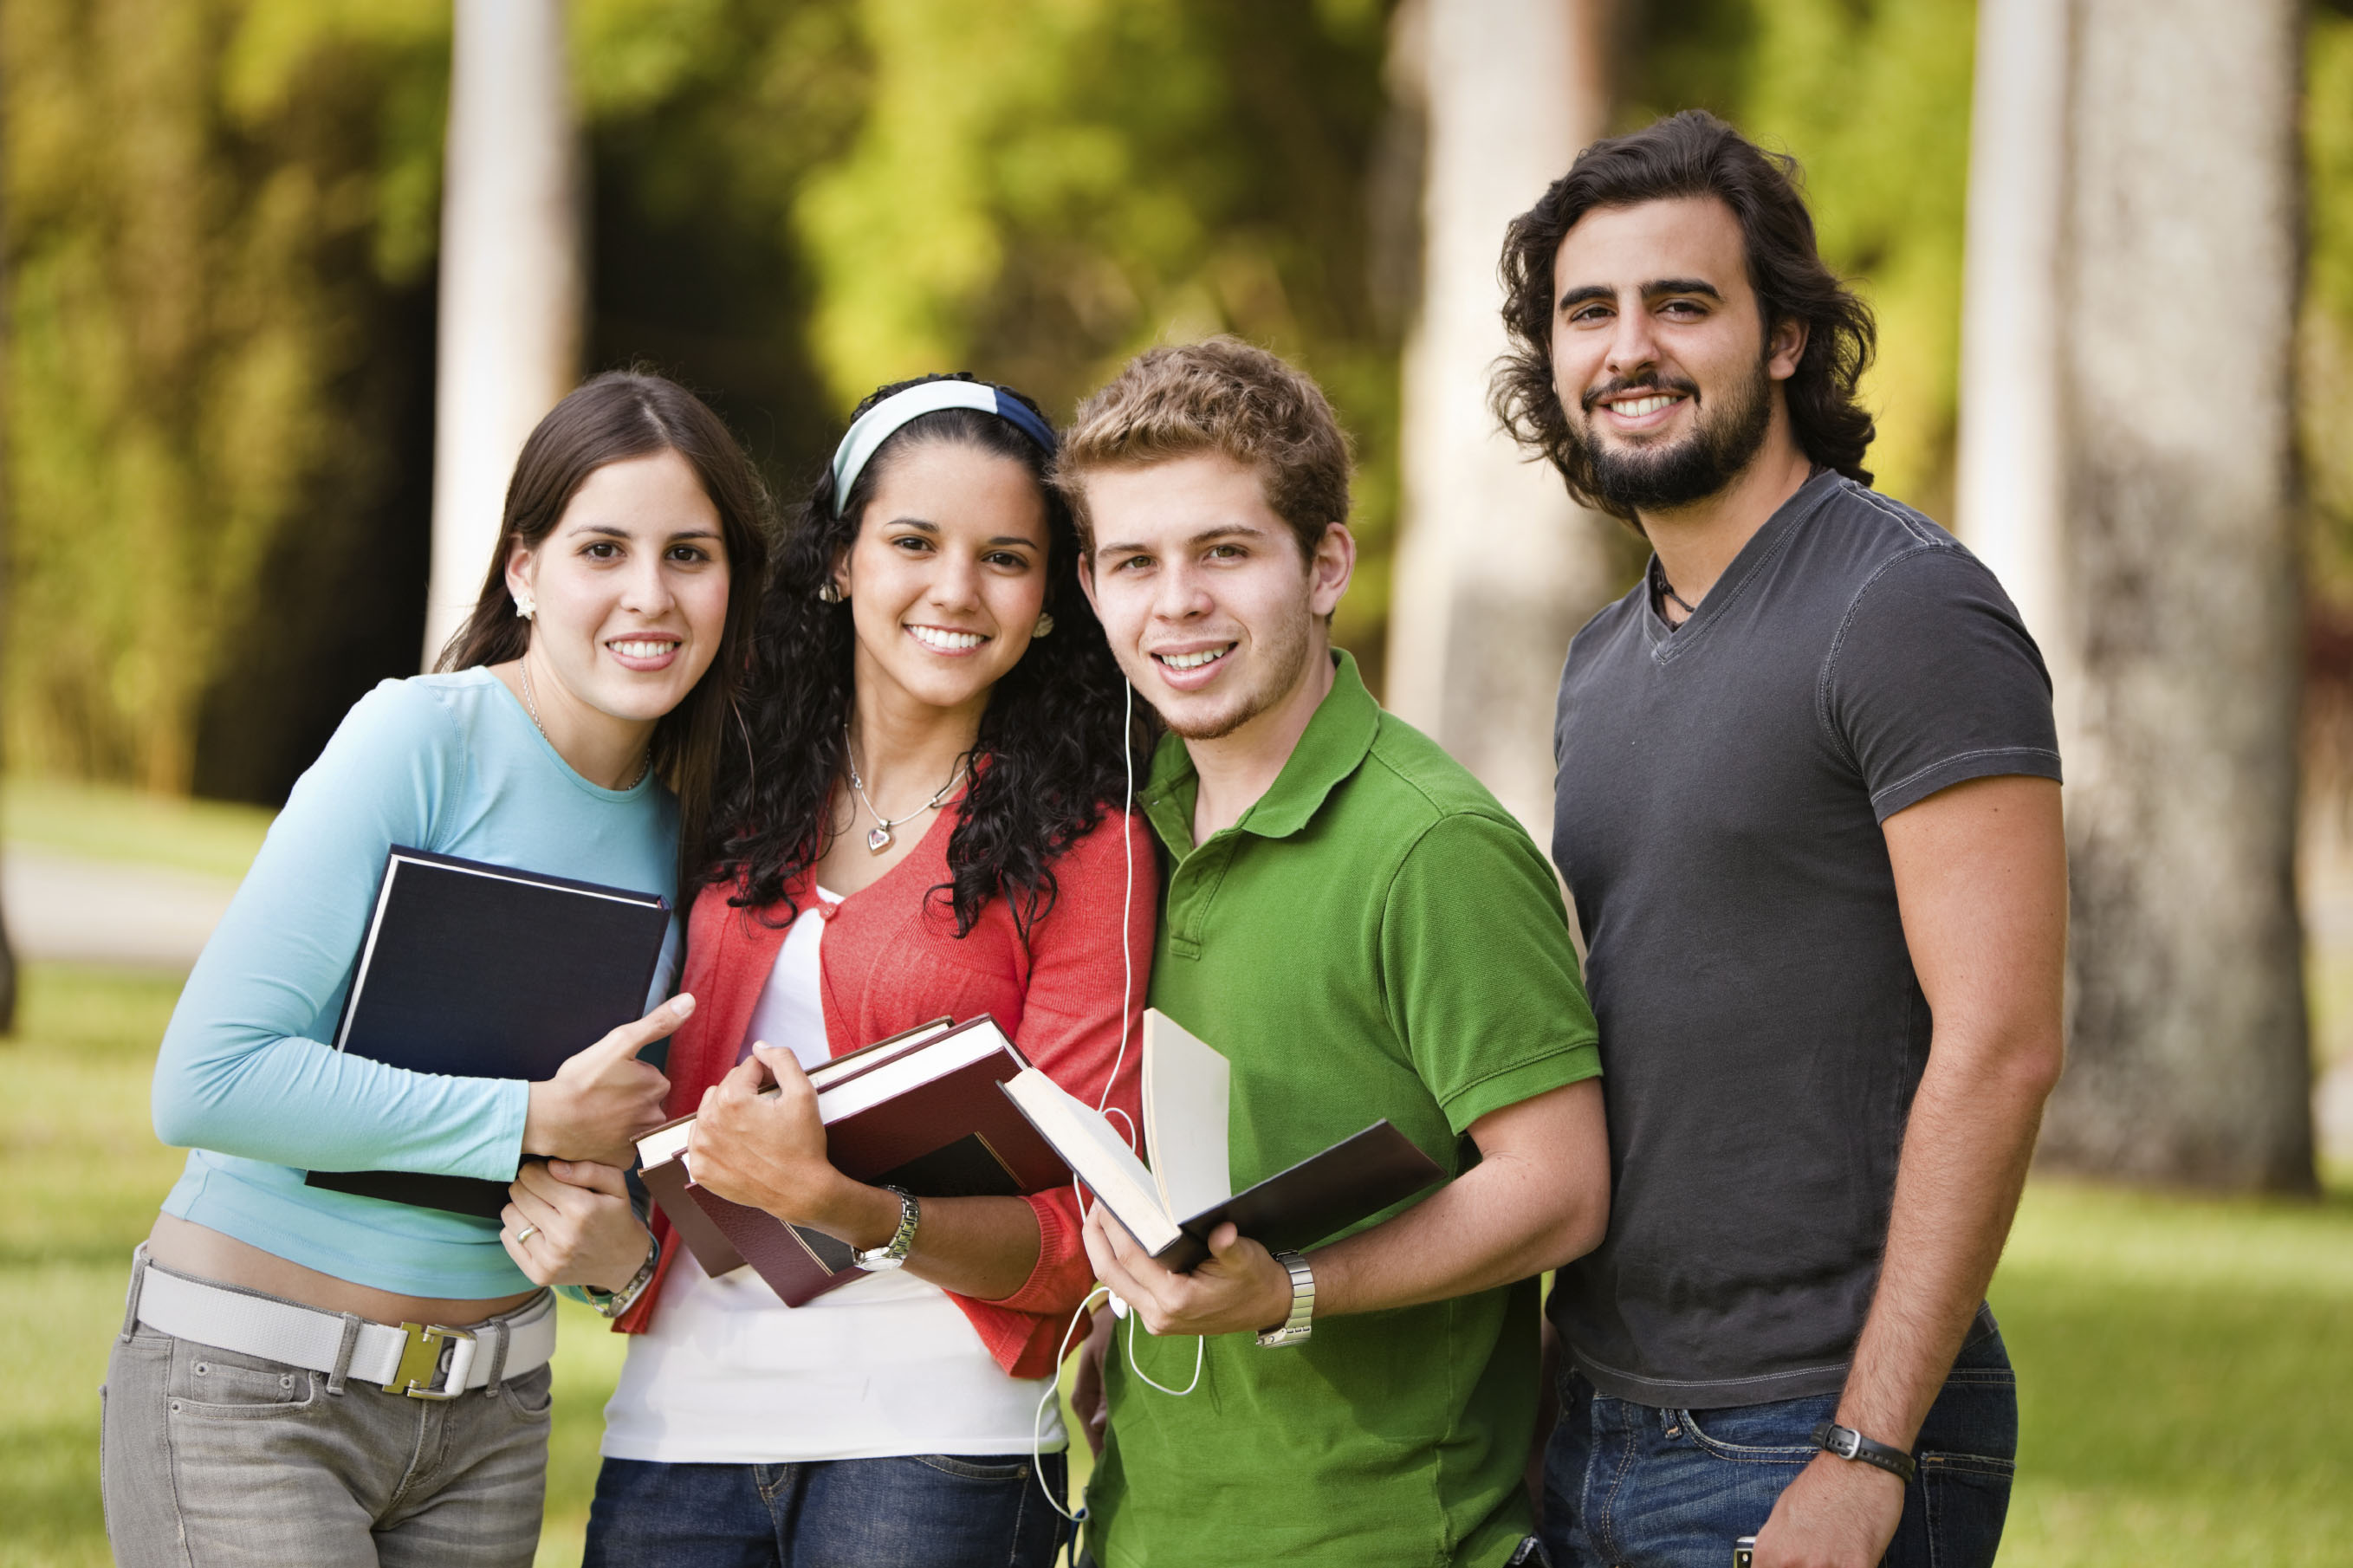 graduate paper writing services